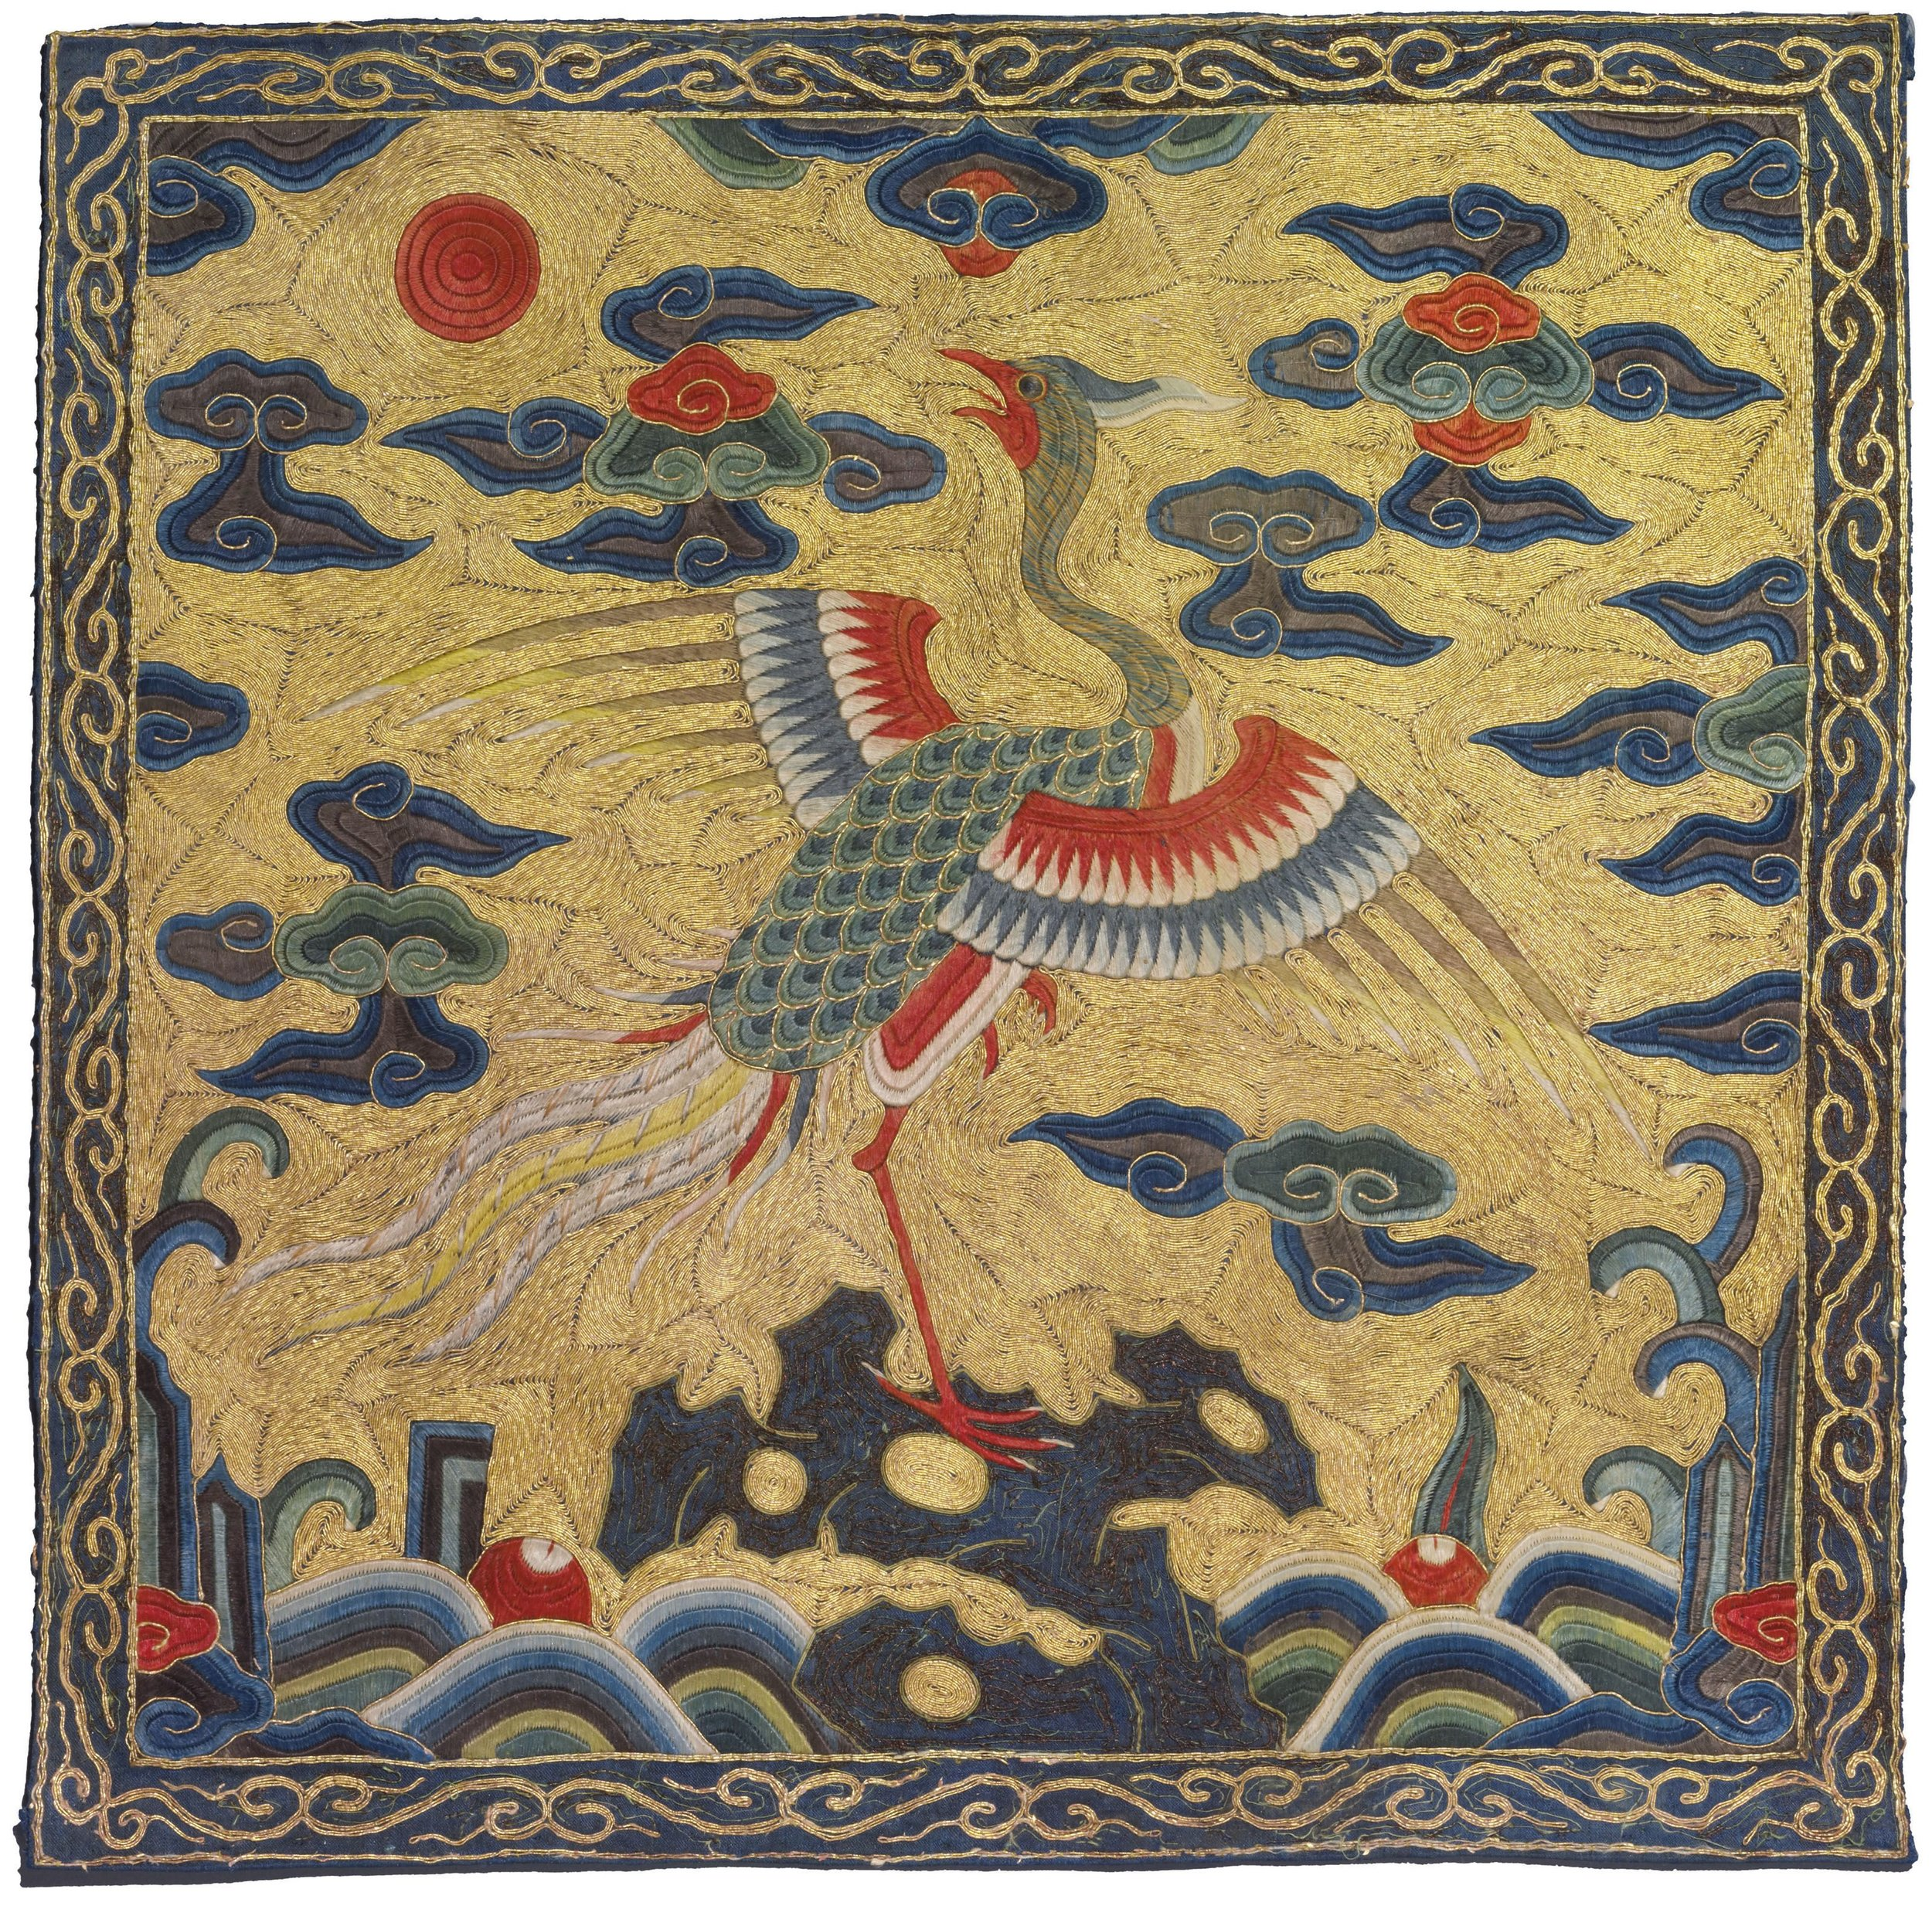 Golden pheasant badge (2nd civil rank) from the Kangxi period (1662-1722), on auction through Christie's.